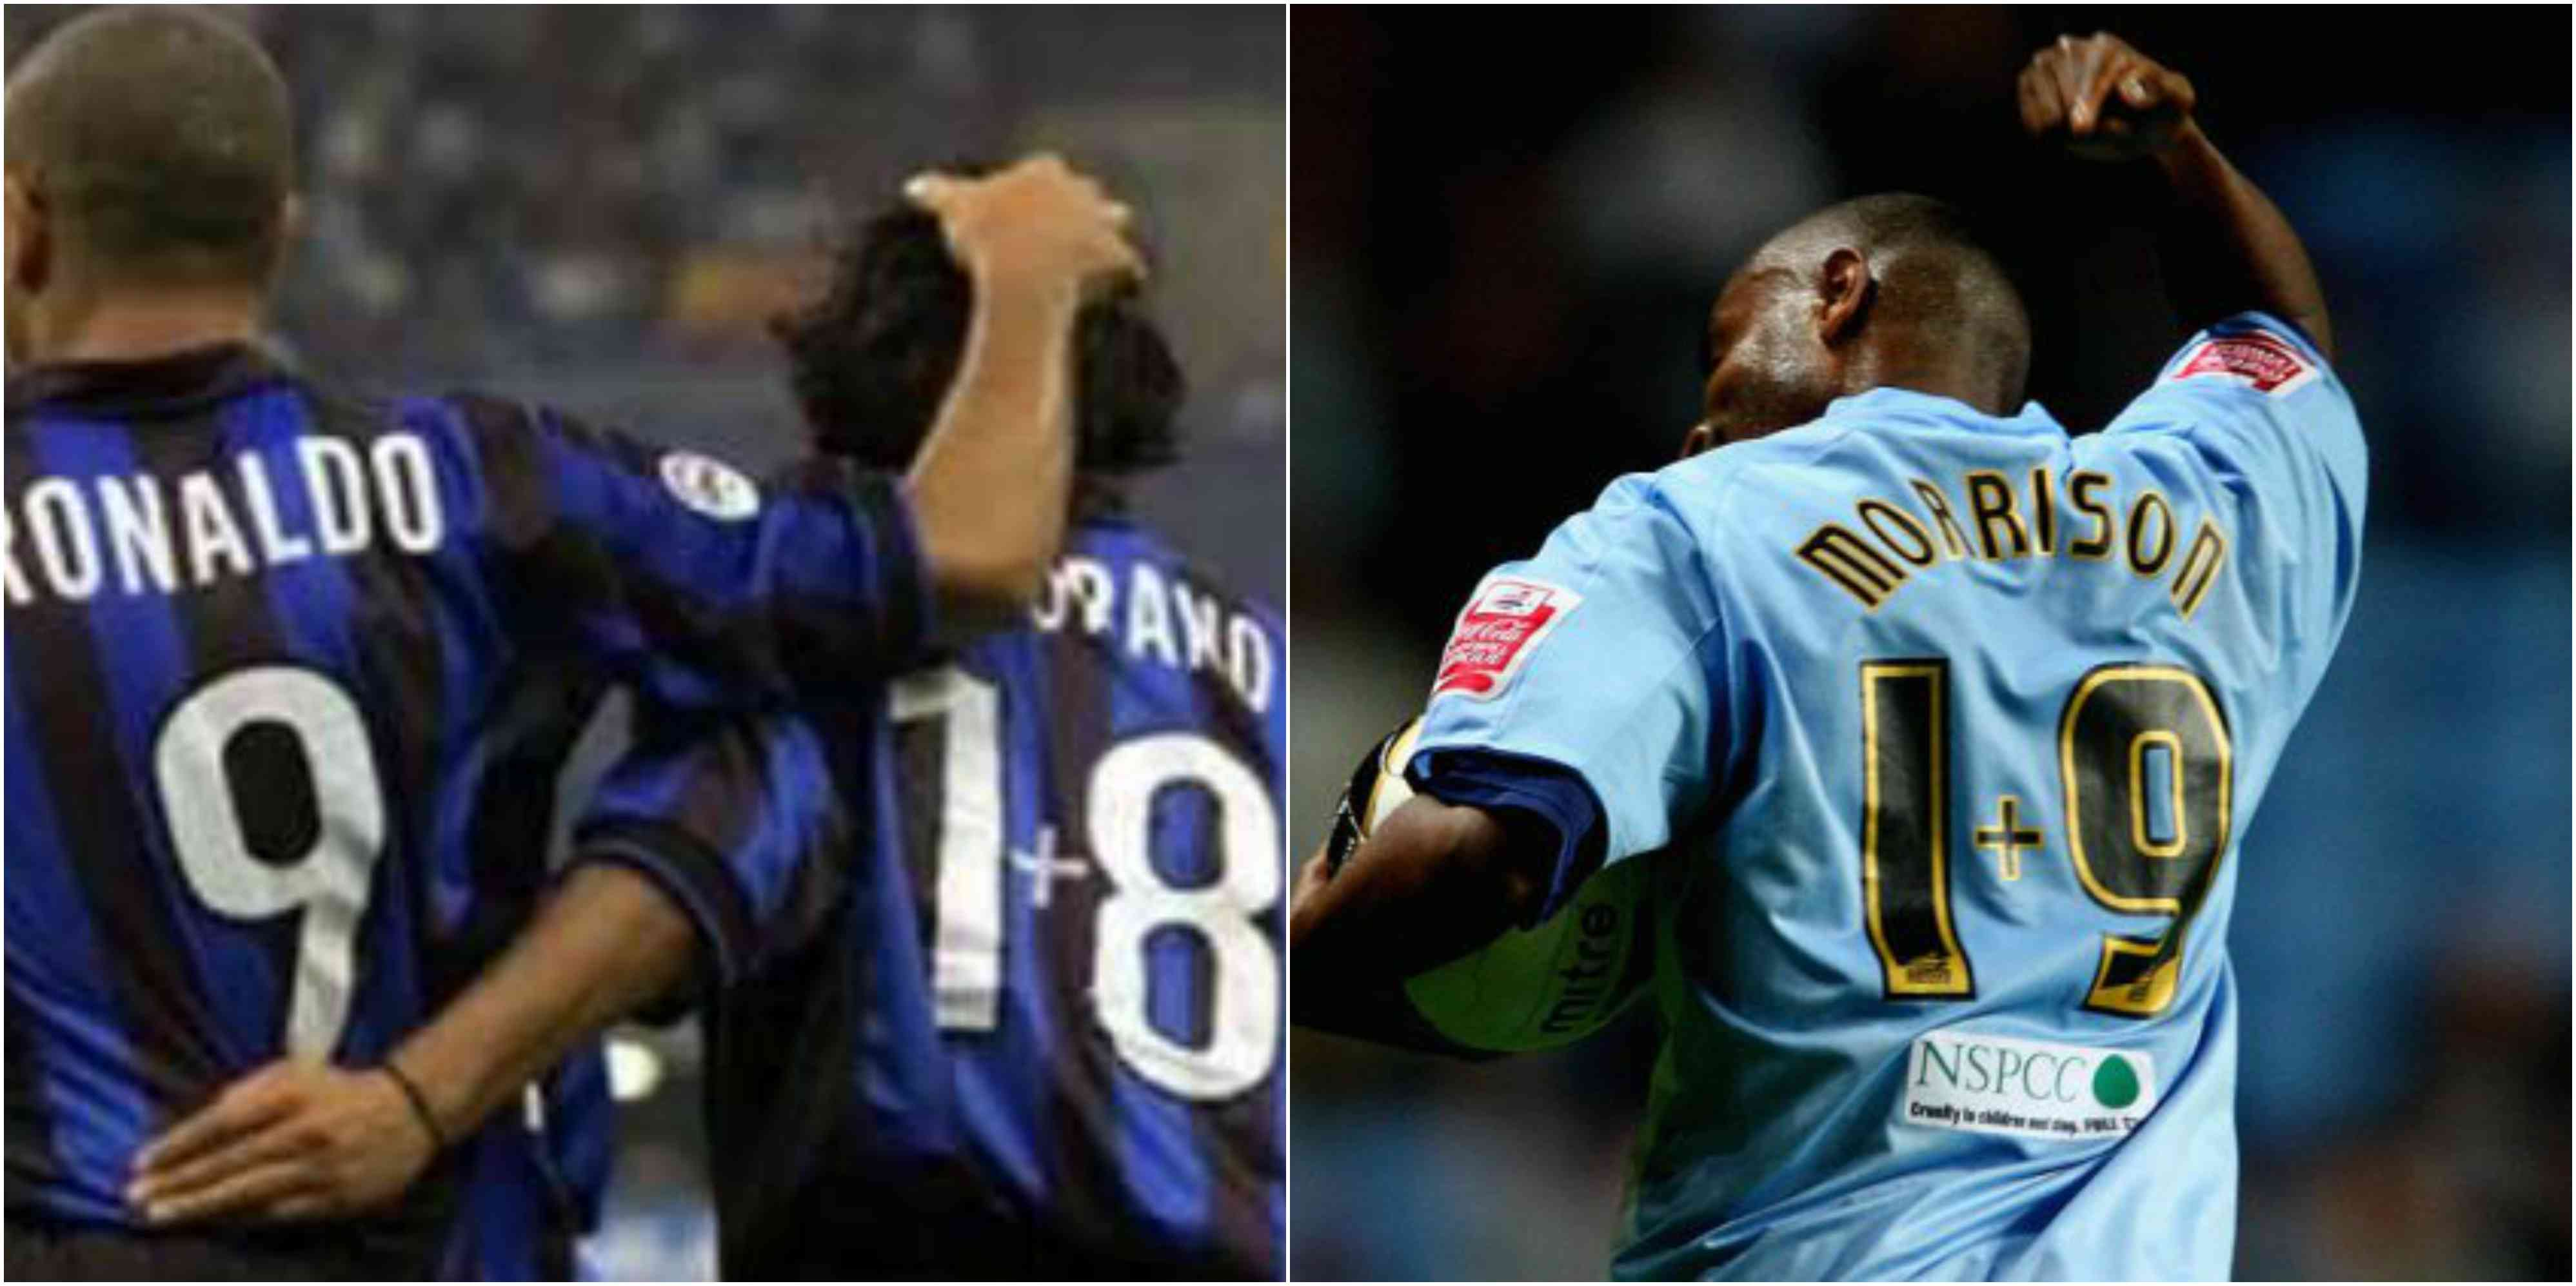 Zamorano wearing 1+8 and Morrison wearing 1+9